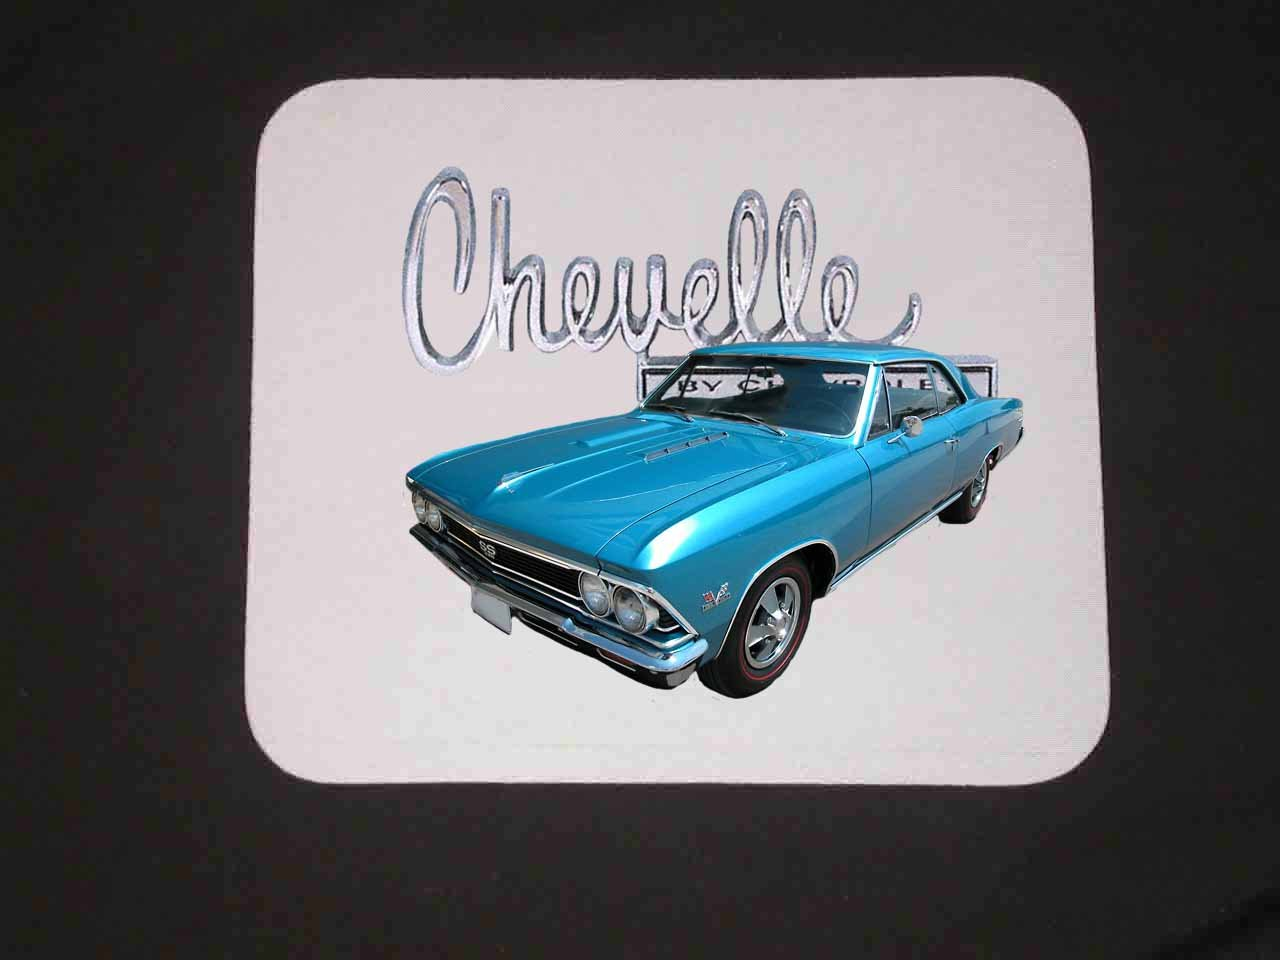 New 1966 Chevy Chevelle Mousepad!